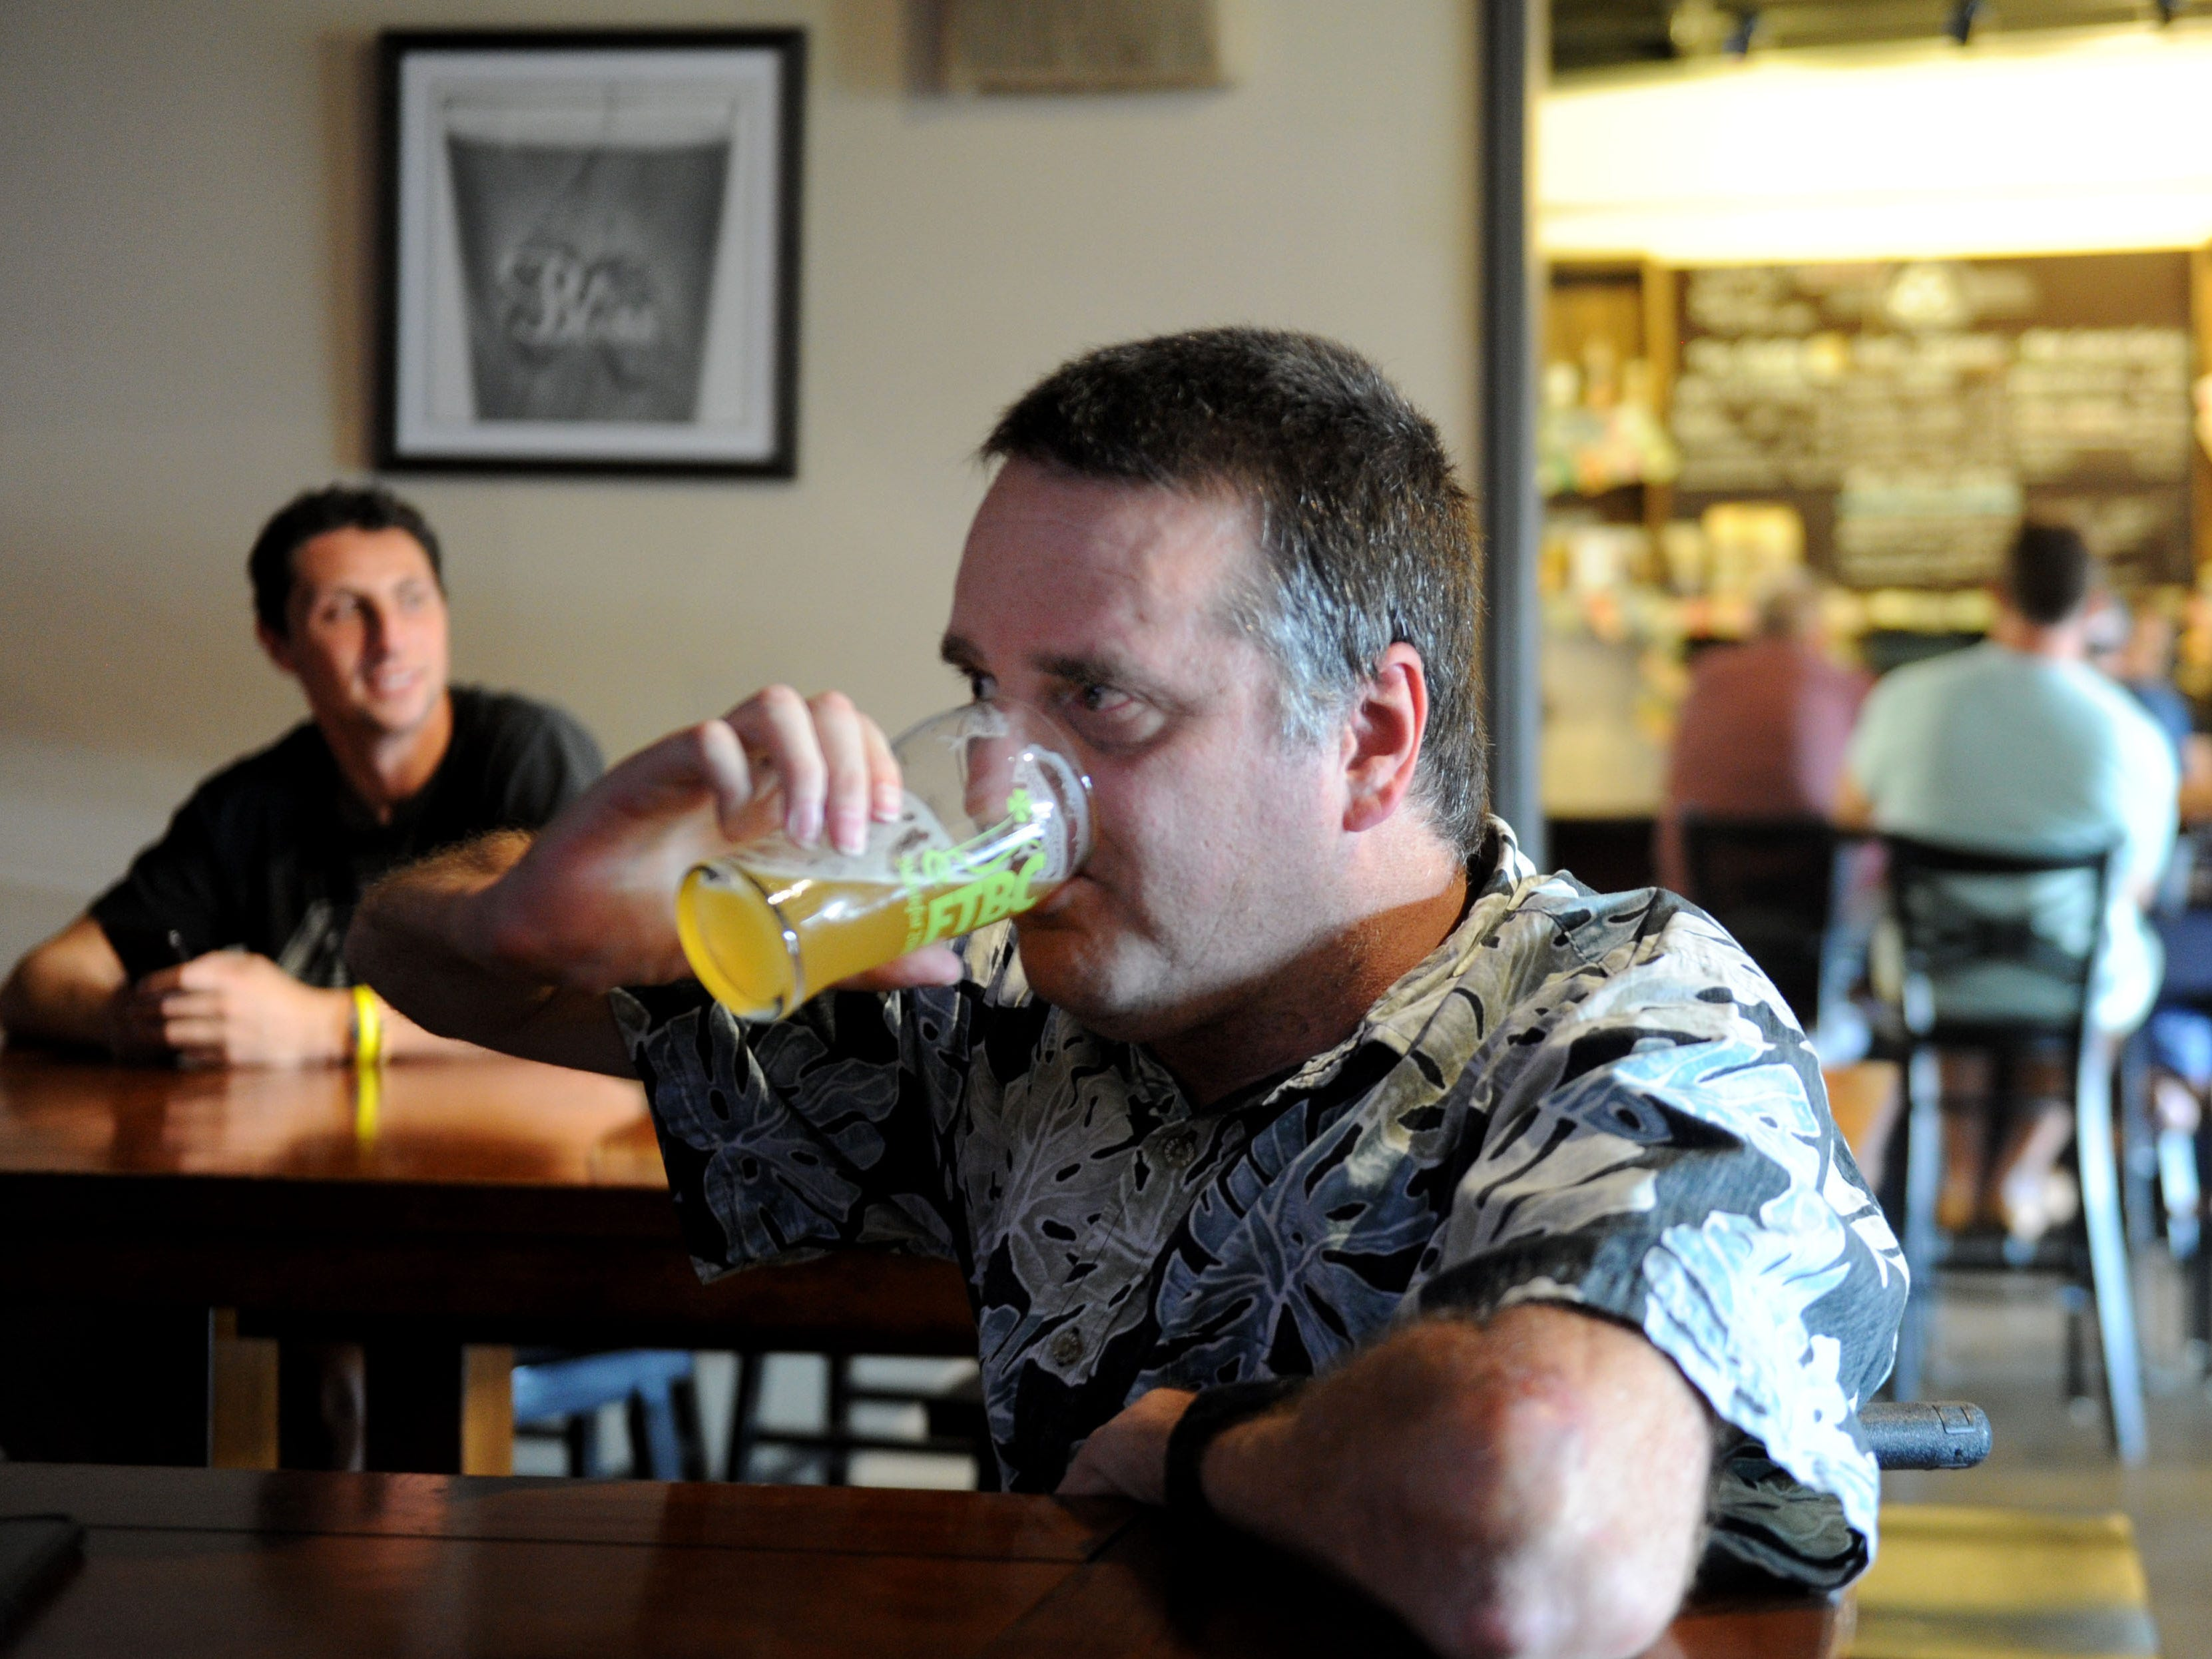 Chris Flynn enjoys a beer at Five Threads Brewing Company in Westlake Village. He visited the brewery on the day it opened and has become a regular.